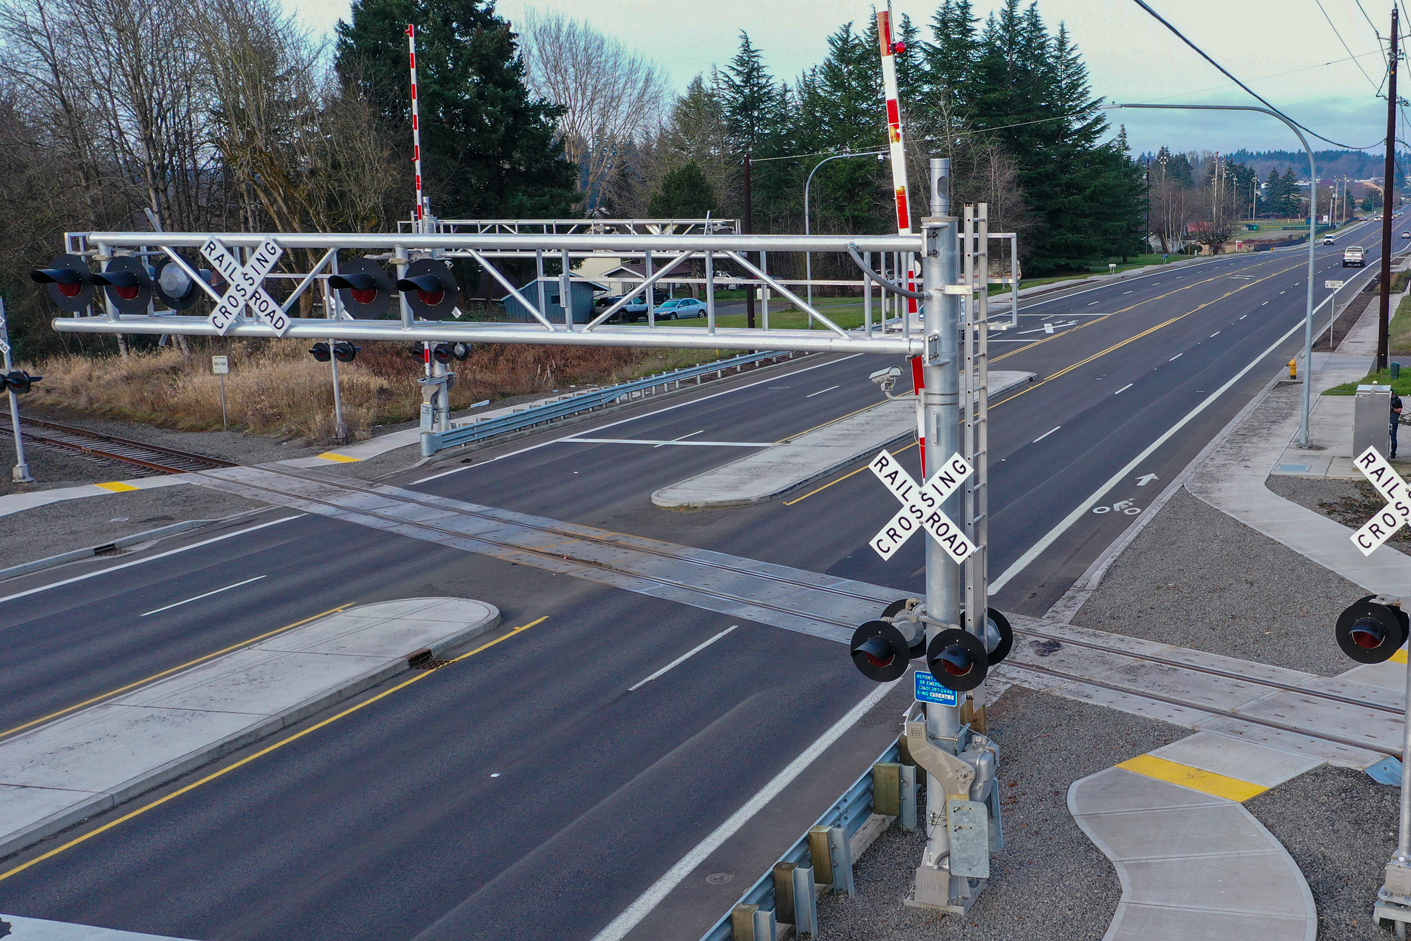 When it comes to railroad crossings, we understand the necessity of getting all of the details right. From lighting to controls and railroad crossing arms, Northeast Electric has installed various crossing systems throughout the Pacific Northwest.